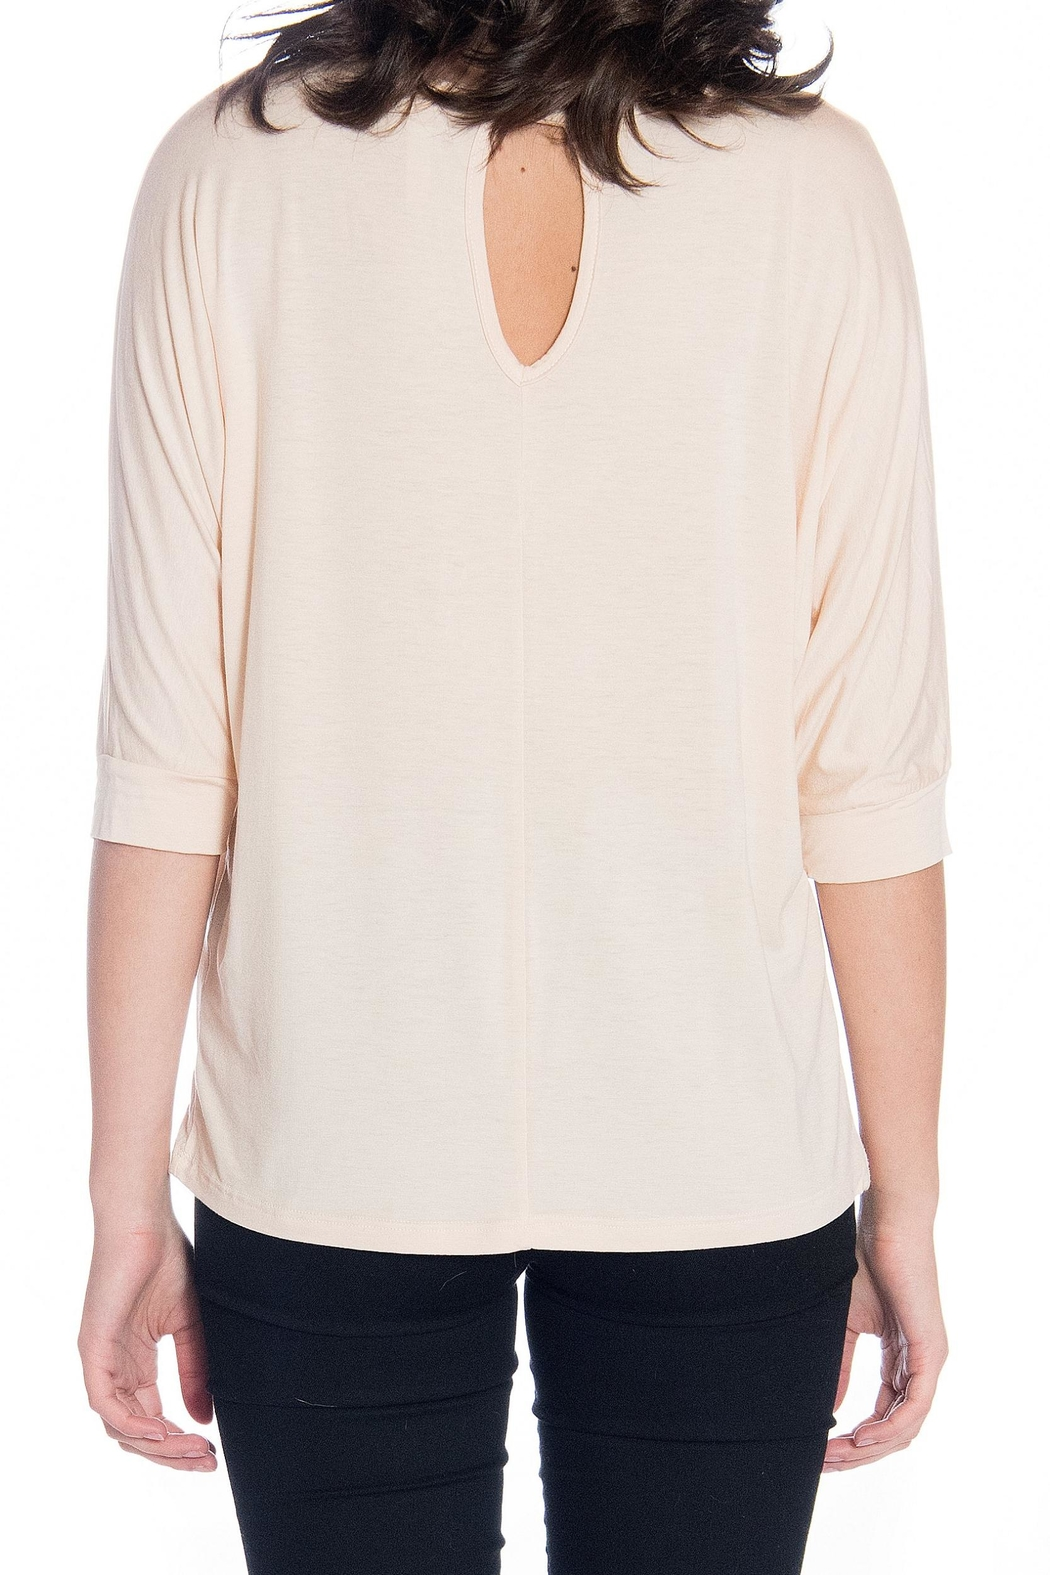 Gilli Tan 3/4 Blouse - Side Cropped Image